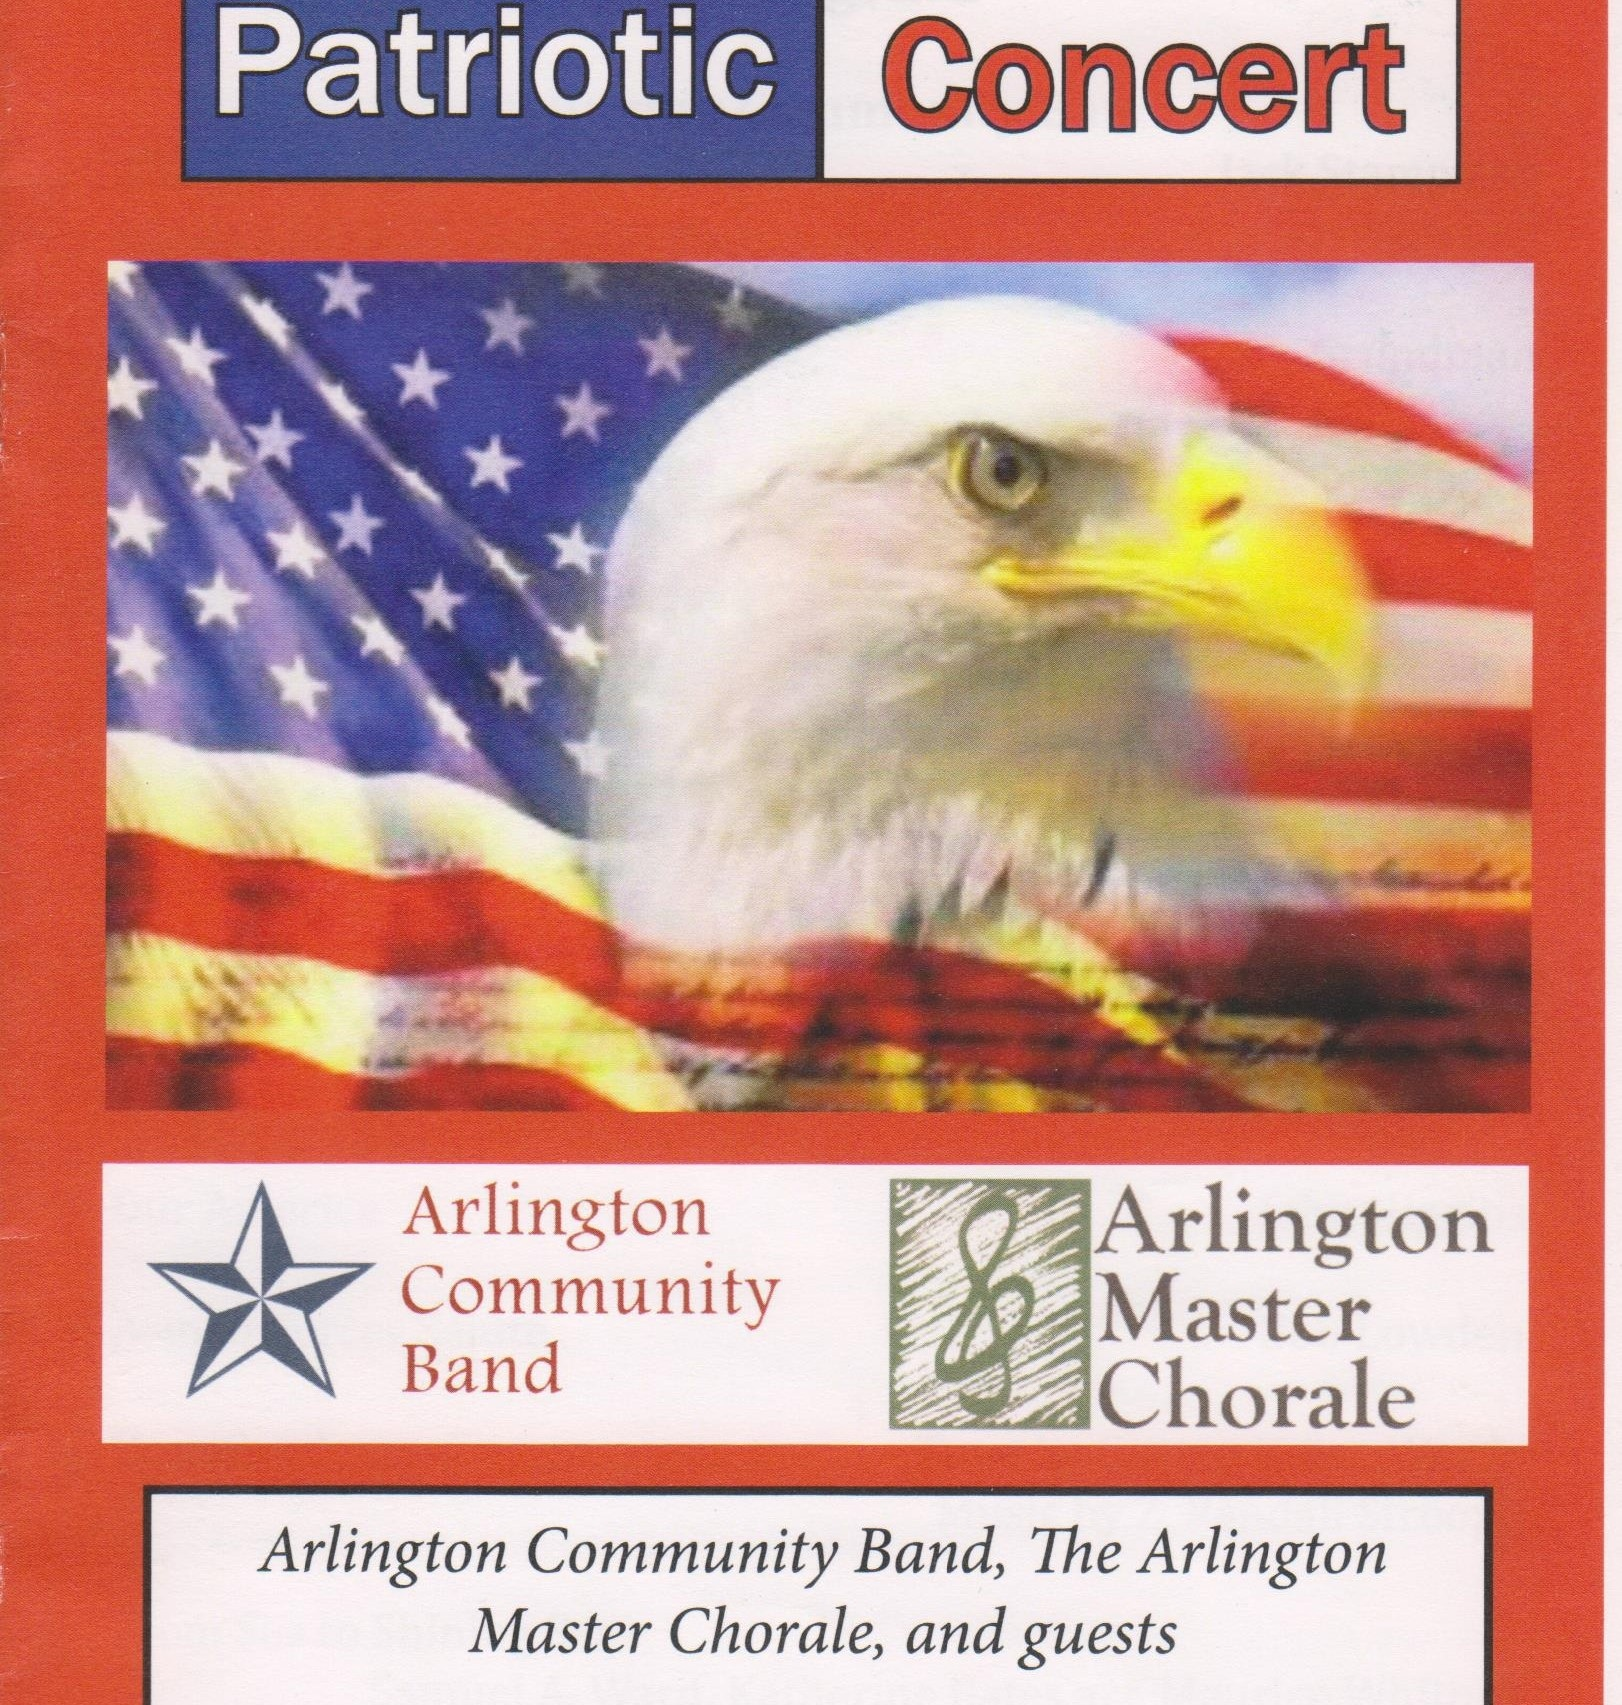 A free concert for all featuring the Arlington Community Band and guests of the Arlington Master Chorale.  Such favorites as Yankee Doodle, God Bless America, and Battle Hymn of the Republic.